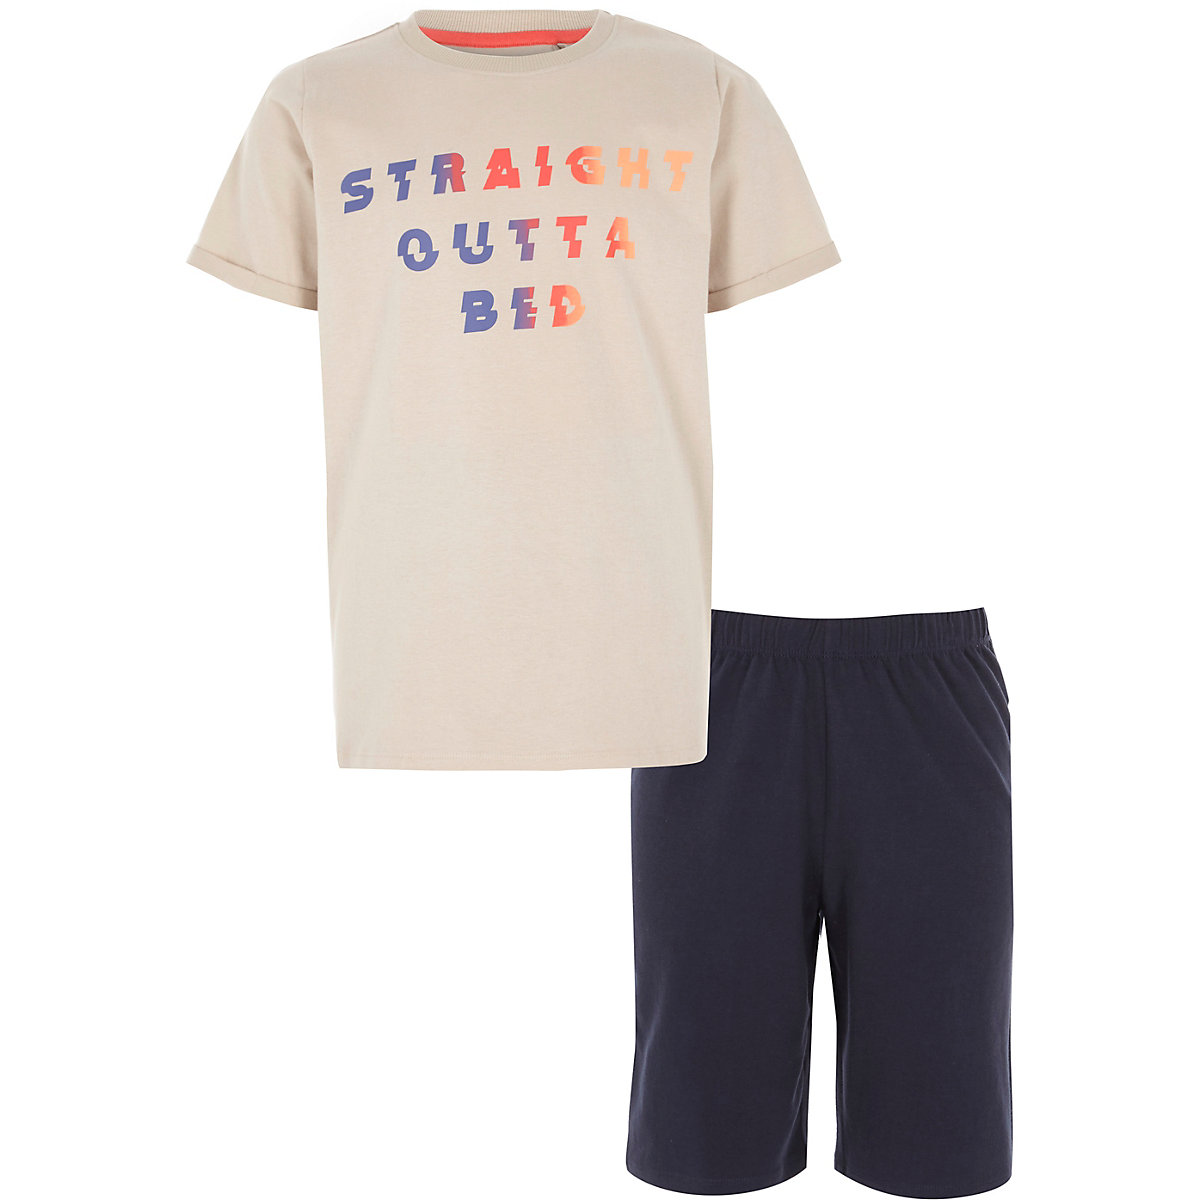 Boys stone 'straight outta bed' pajama set